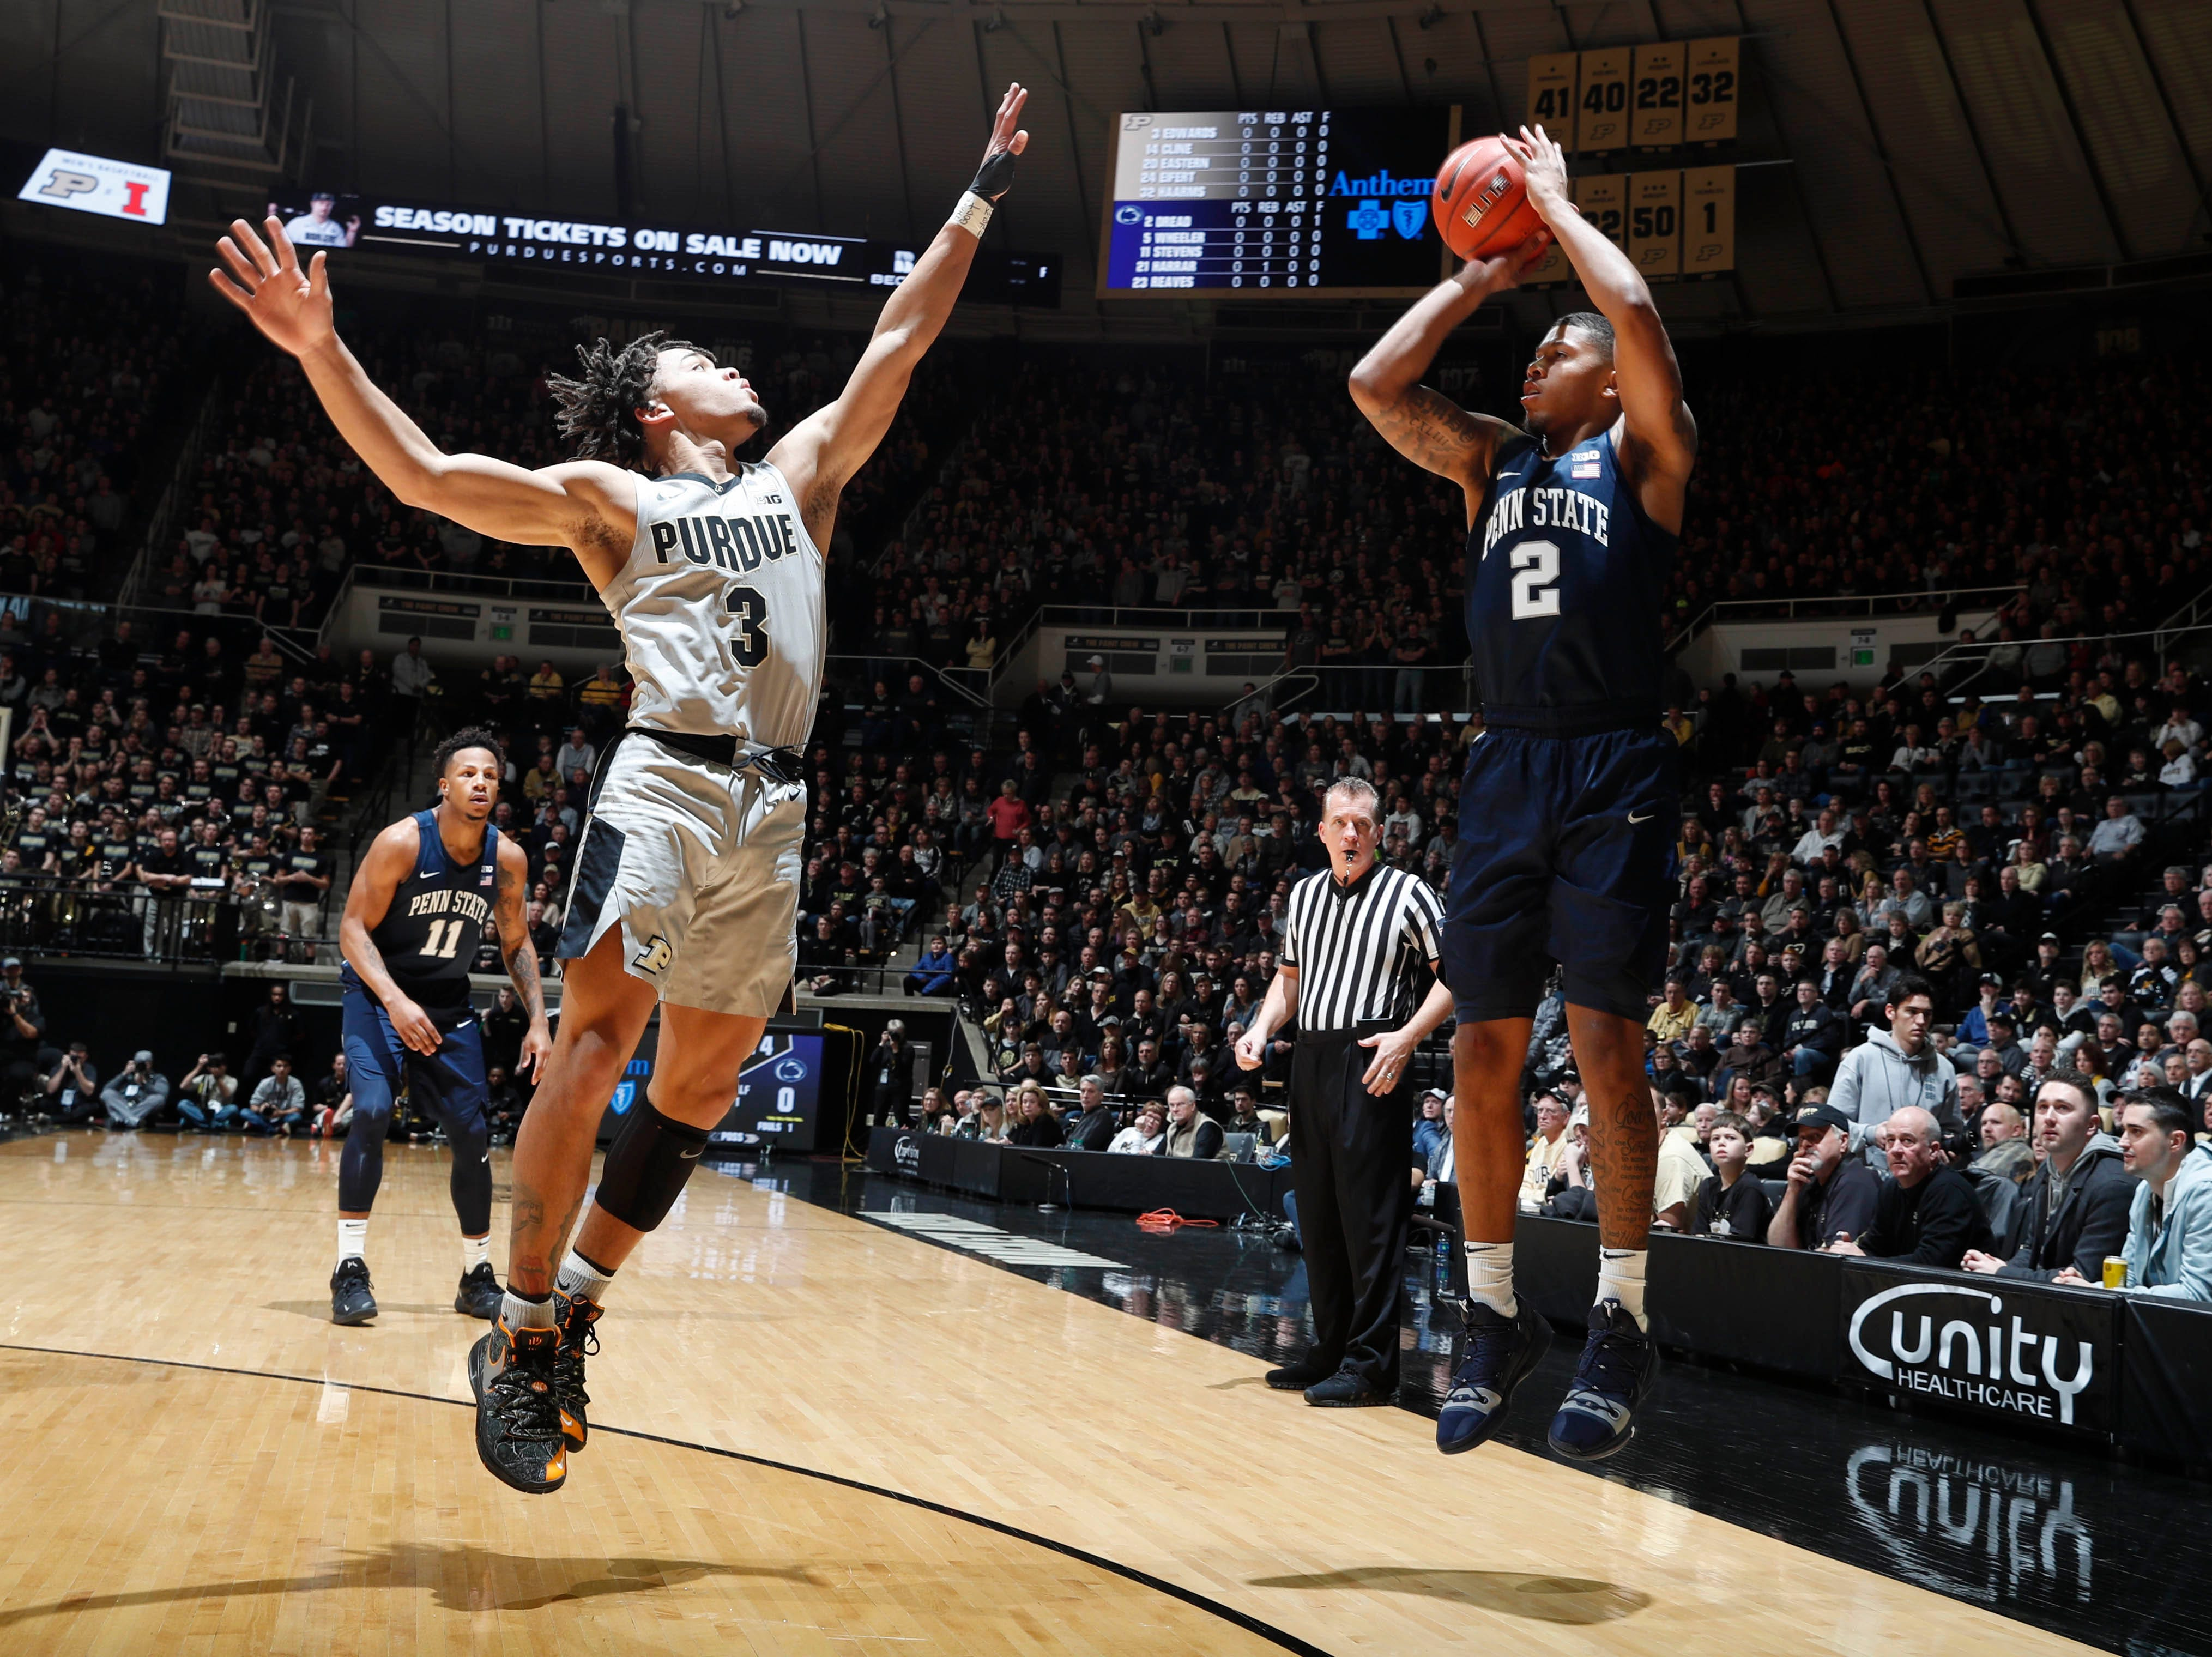 Penn State Nittany Lions guard Myles Dread (2) takes a shot against Purdue Boilermakers guard Carsen Edwards (3) during the first half at Mackey Arena.